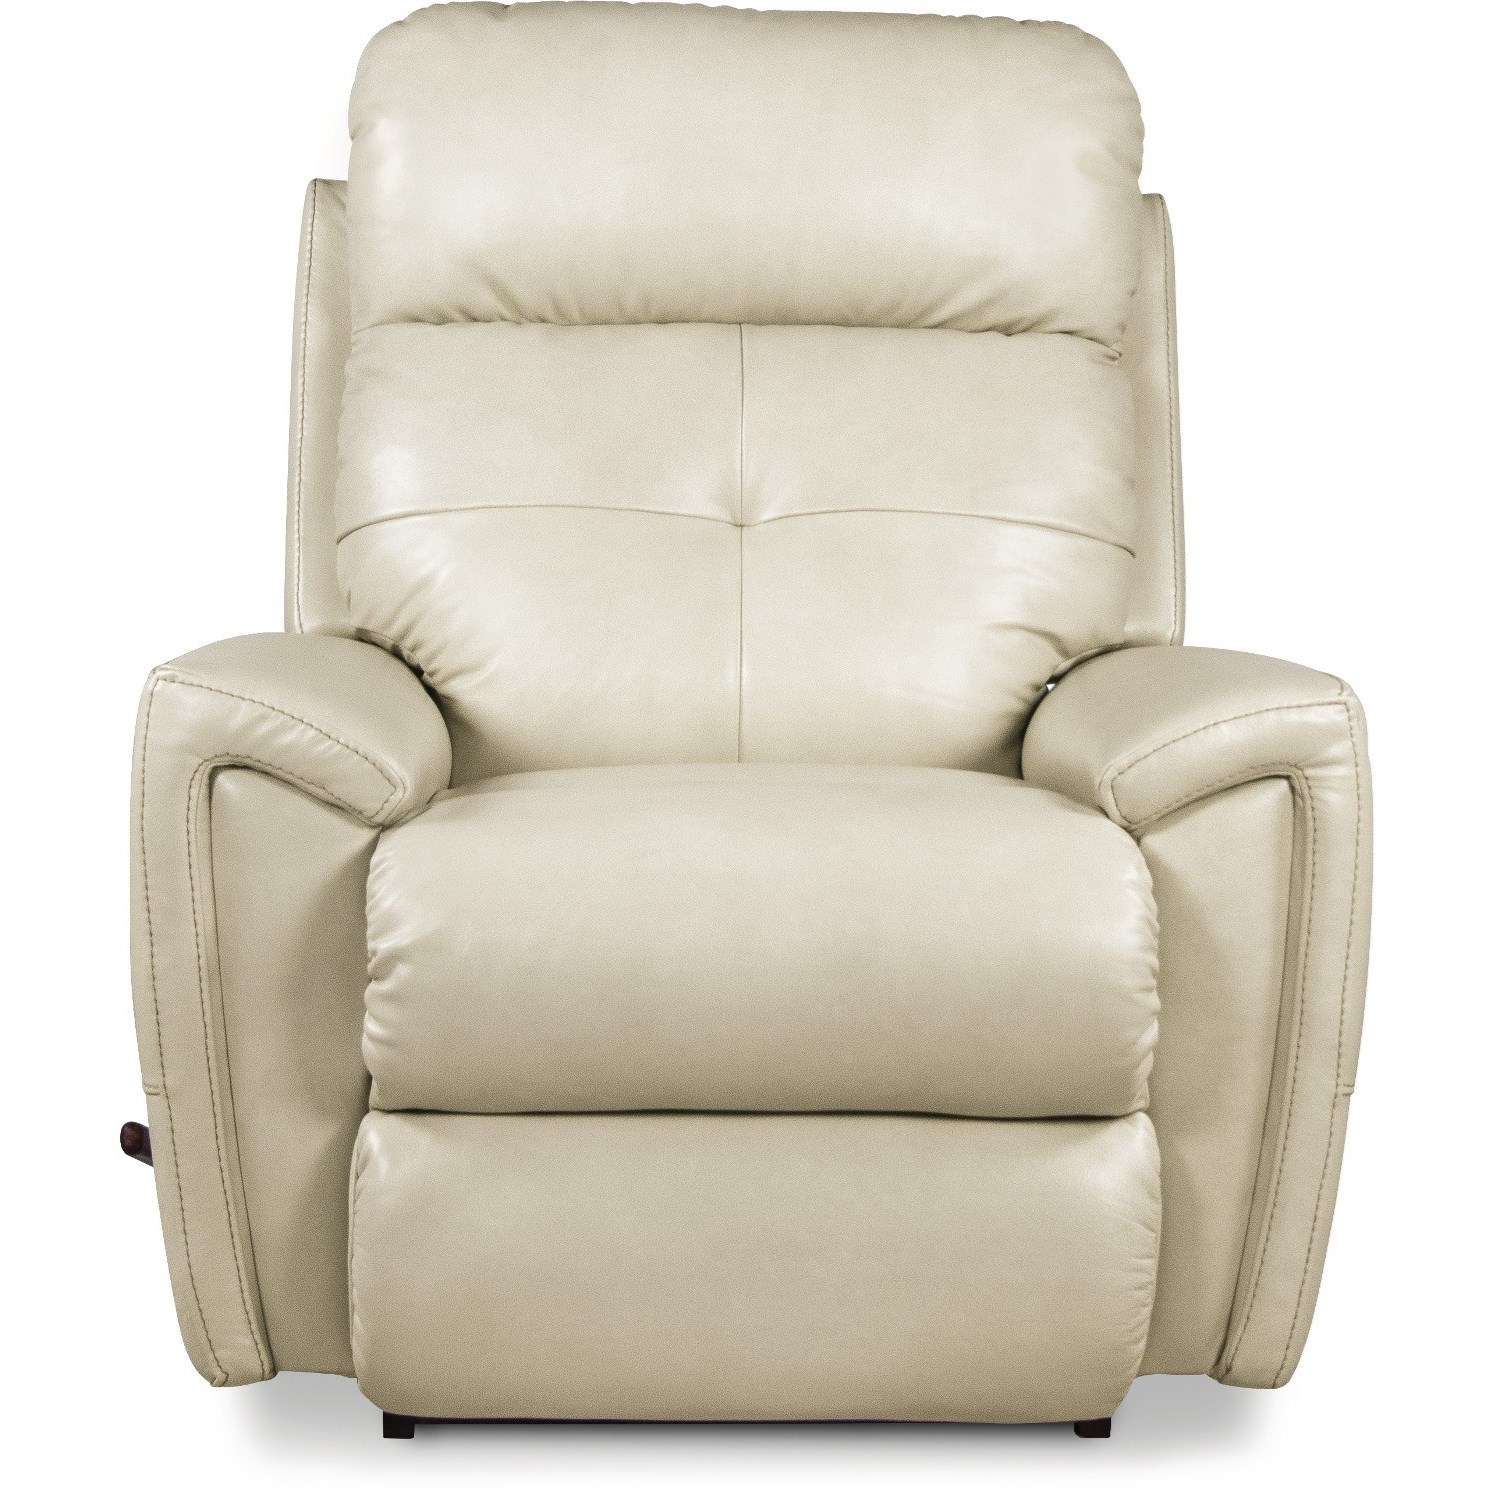 Douglas Power Wall Recliner w/ Headrest & Lumbar by La-Z-Boy at Jordan's Home Furnishings